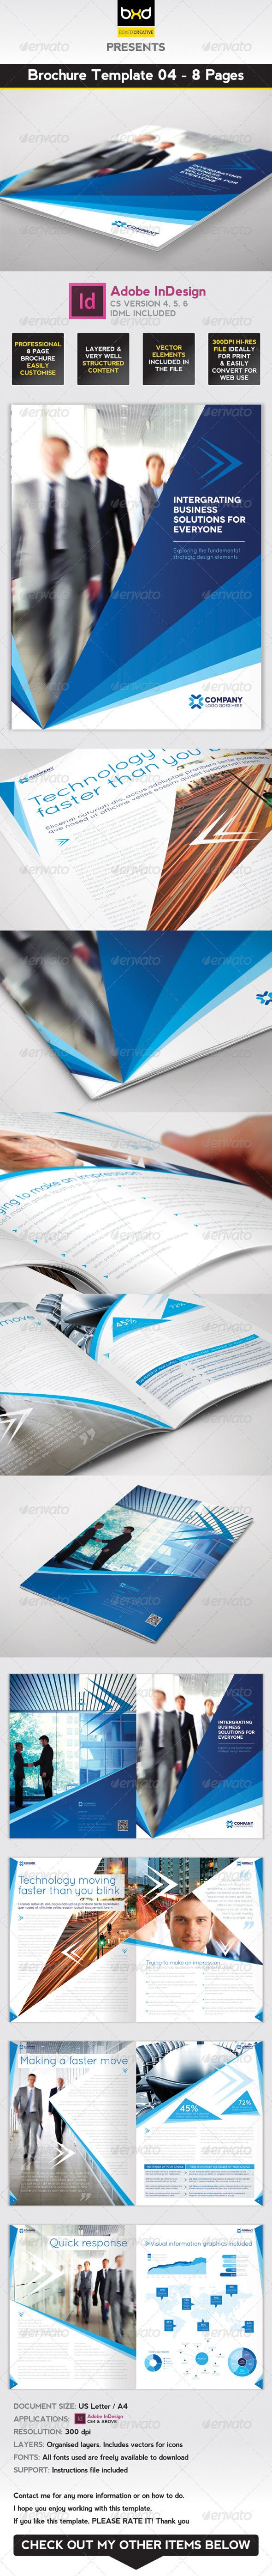 Brochure Template - InDesign 8 Page Layout 04 | Pinterest | Brochure ...